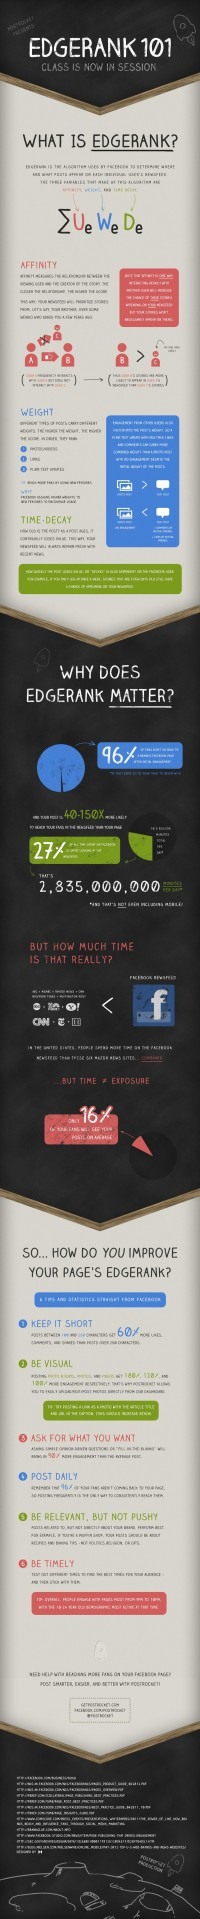 [INFOGRAPHIC] Facebook EdgeRank 101 – Class is Now in Session | PostRocket Blog